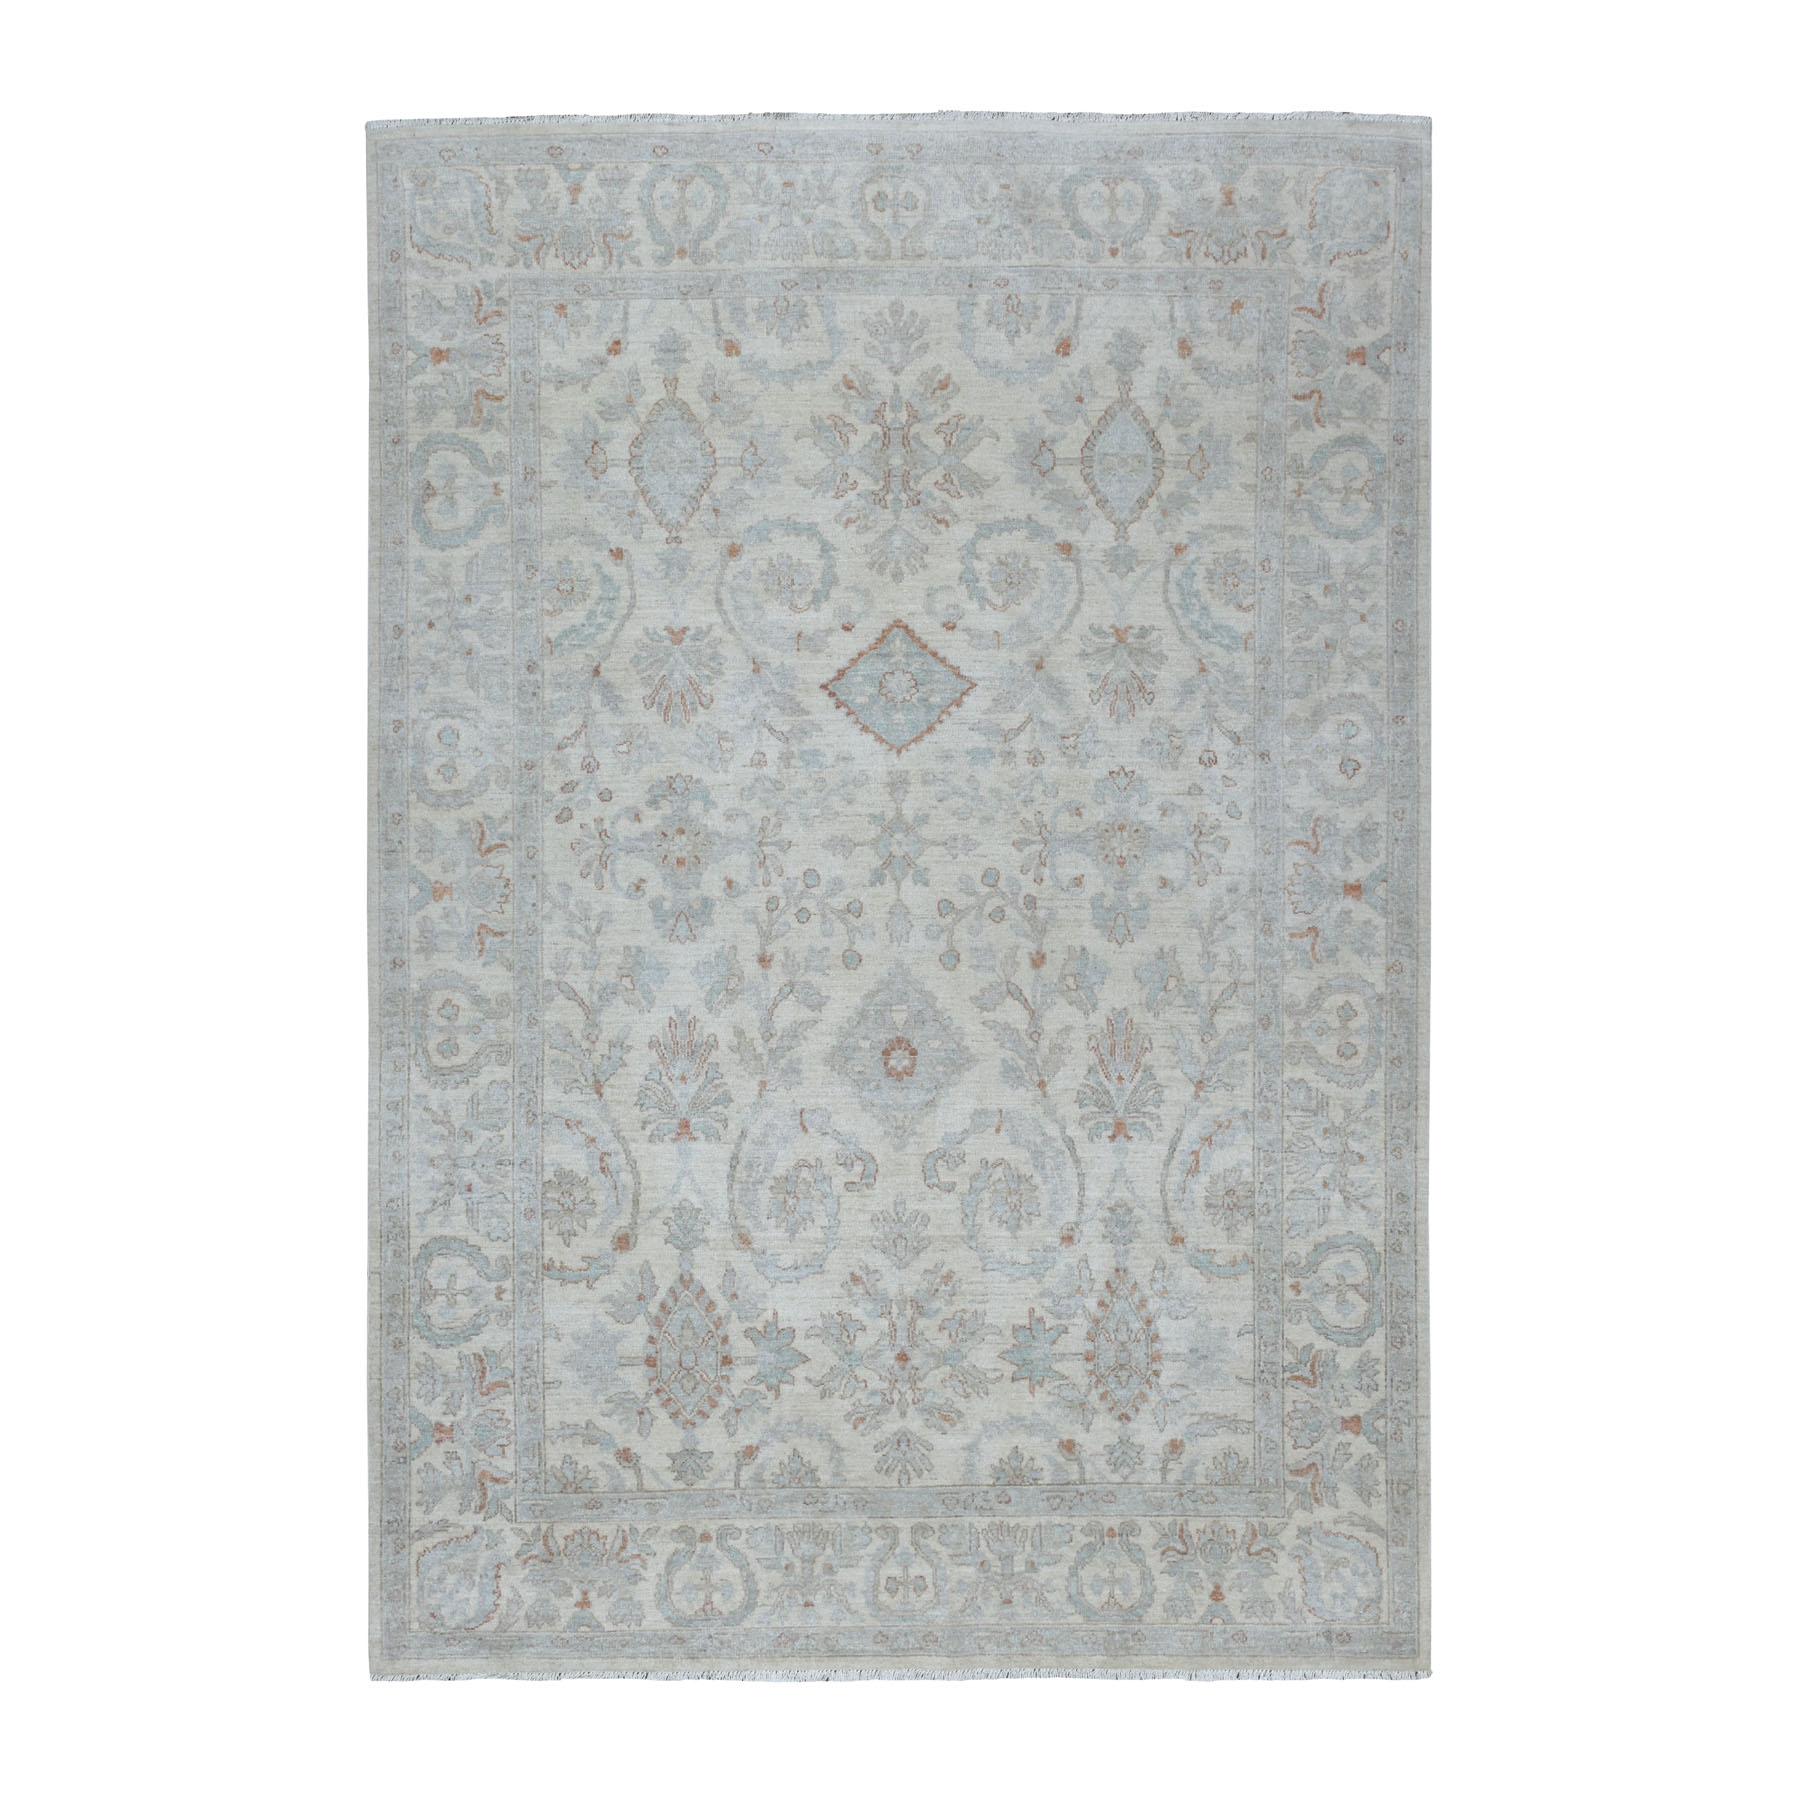 """6'X8'10"""" White Wash Peshawar Pure Wool Hand Knotted Oriental Rug moaec9a0"""